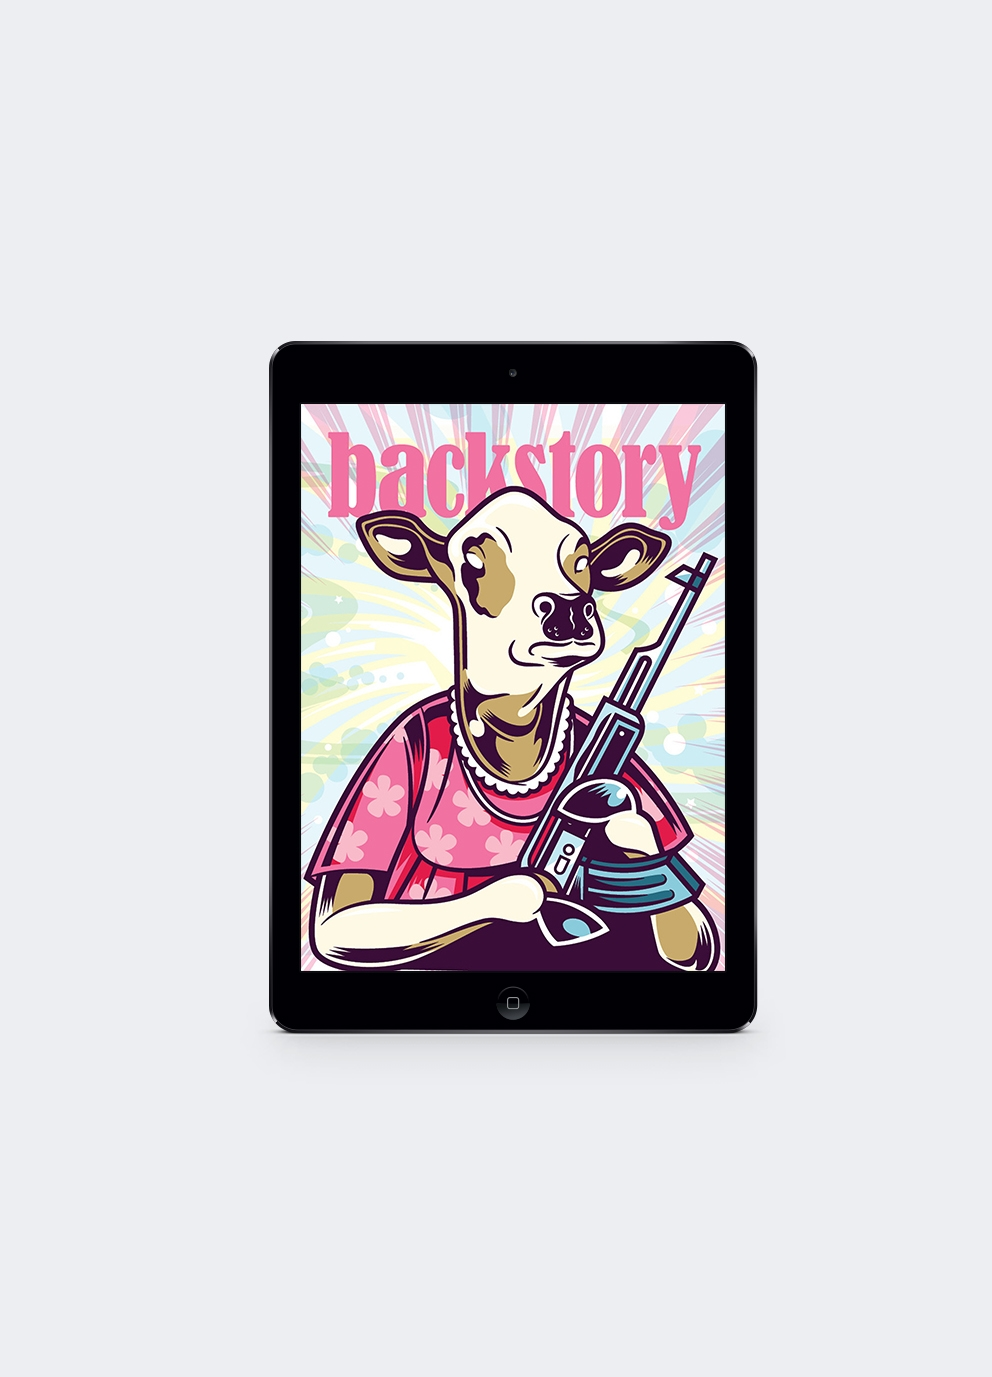 BackStory Ipad Magazine